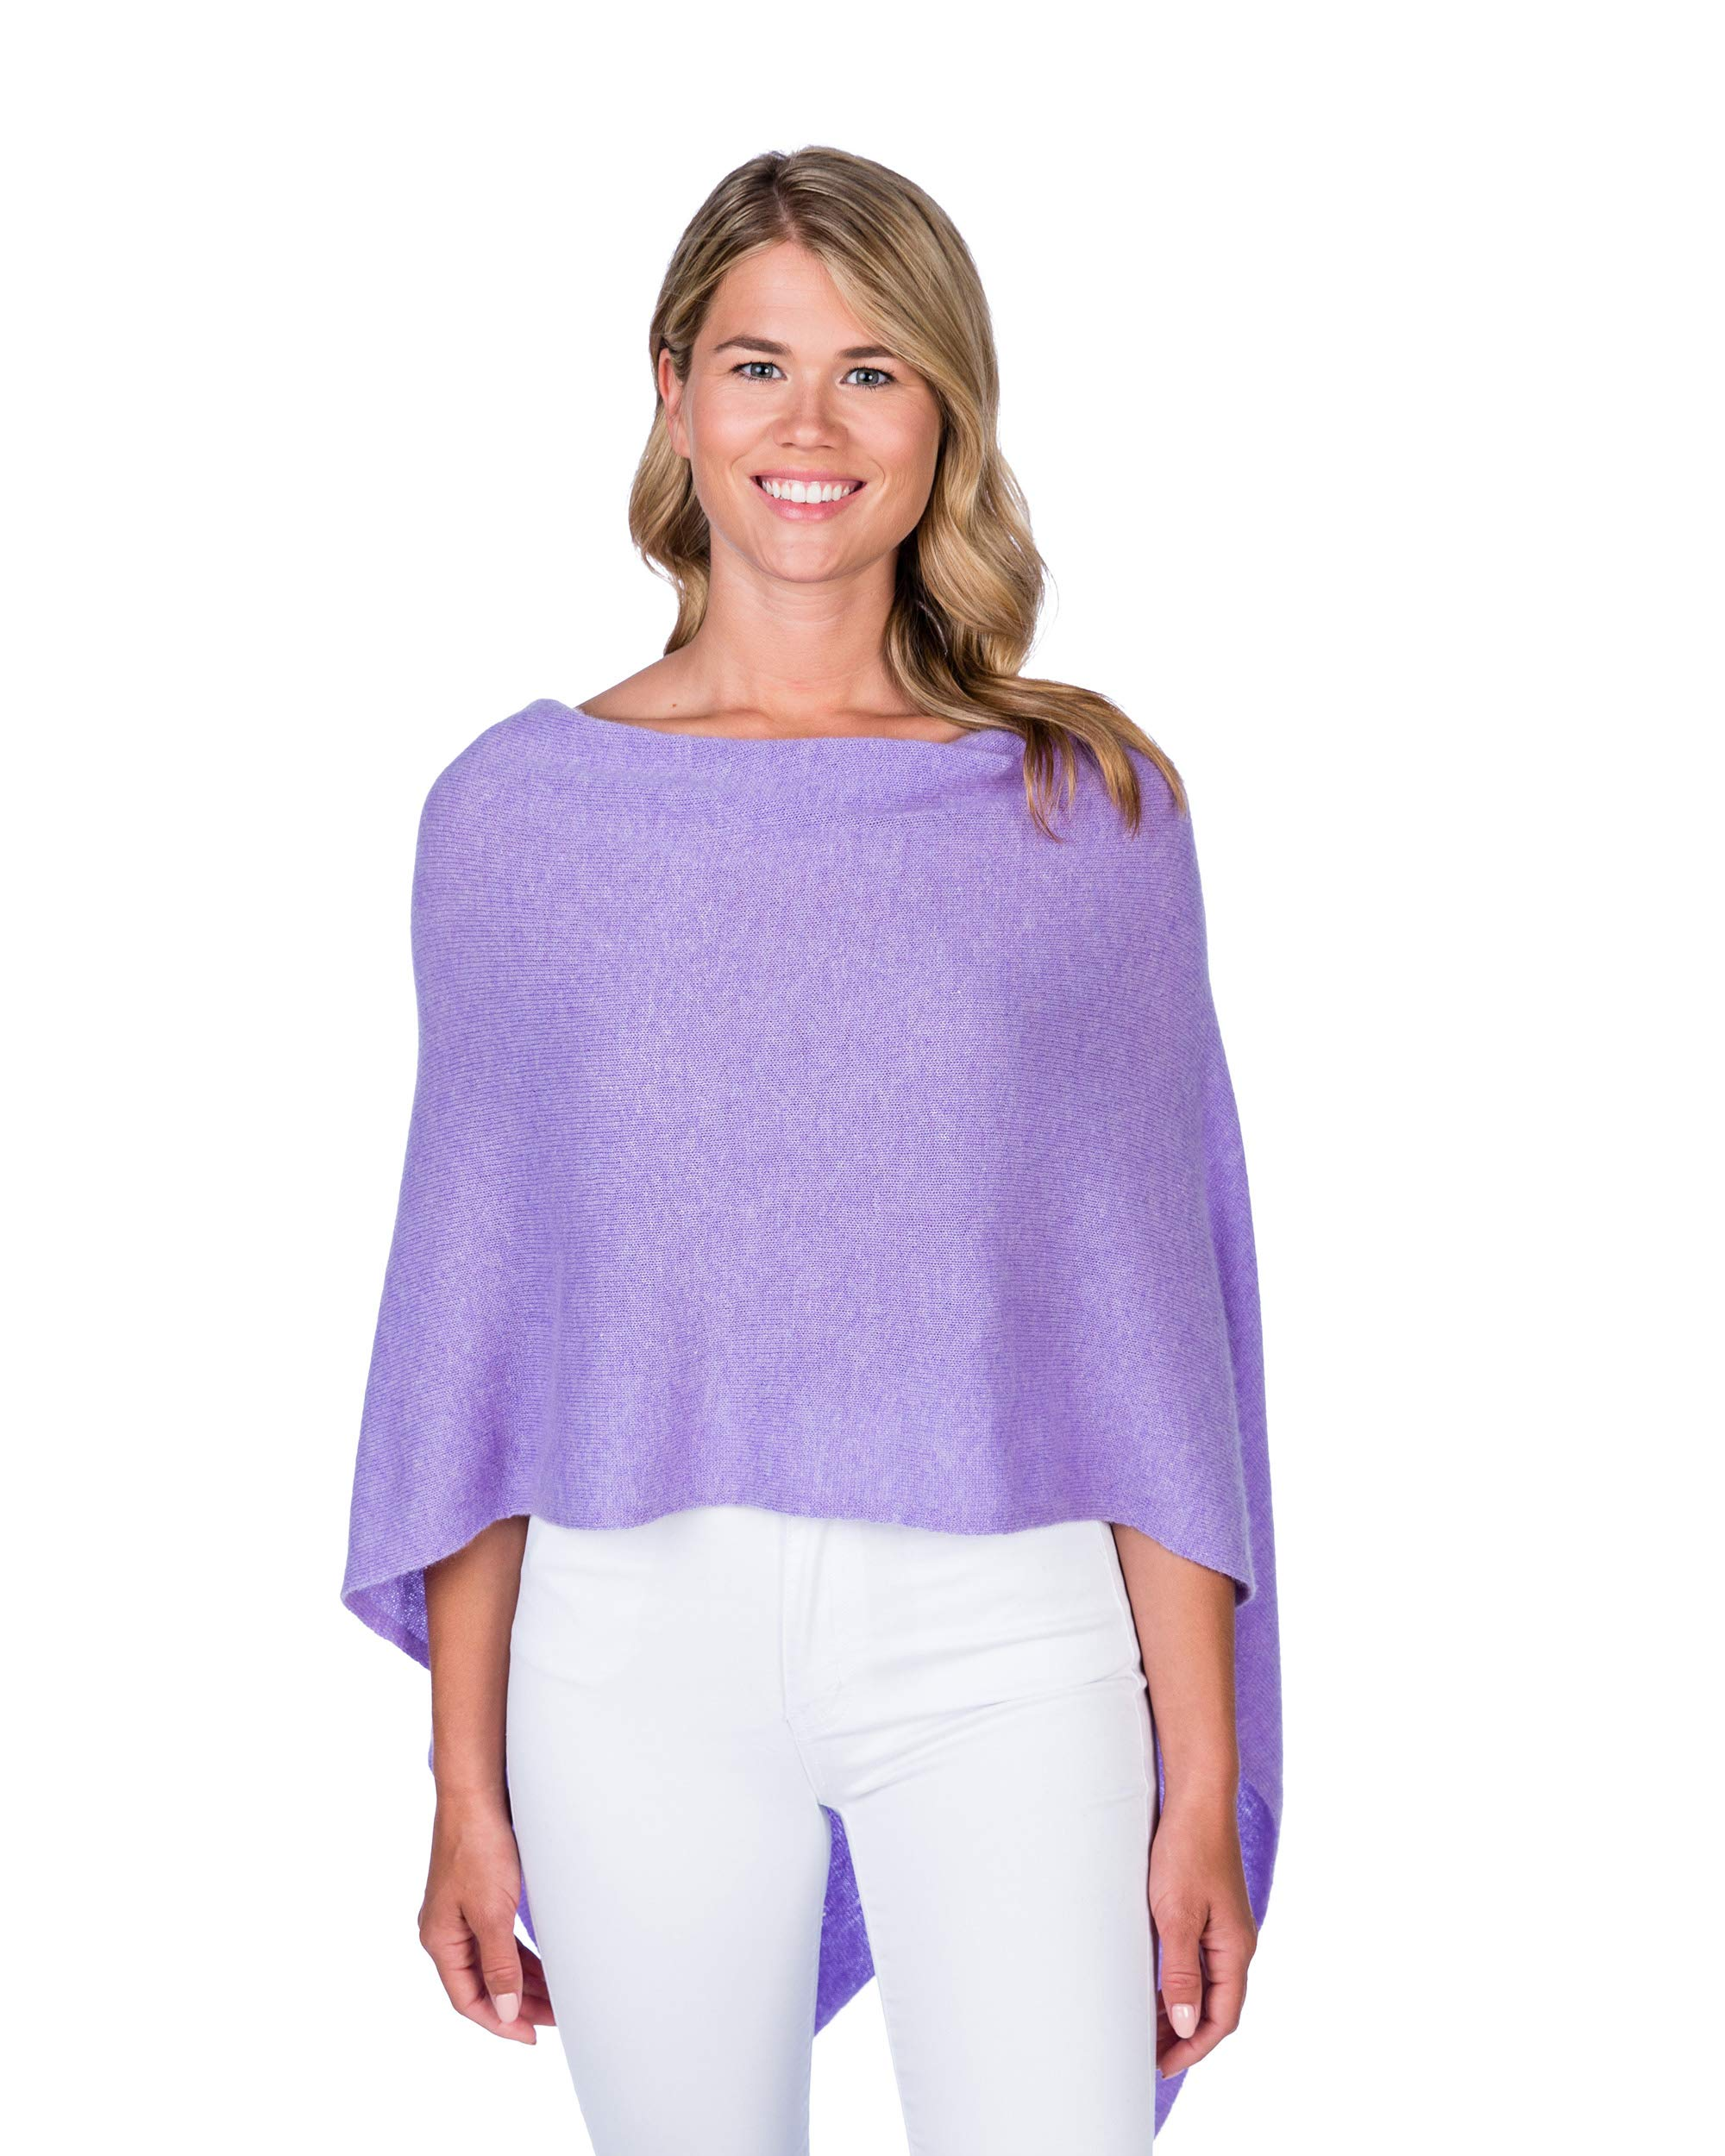 Alashan Cashmere Claudia Nichole Cashmere Draped Dress Topper - Lilac - 1469